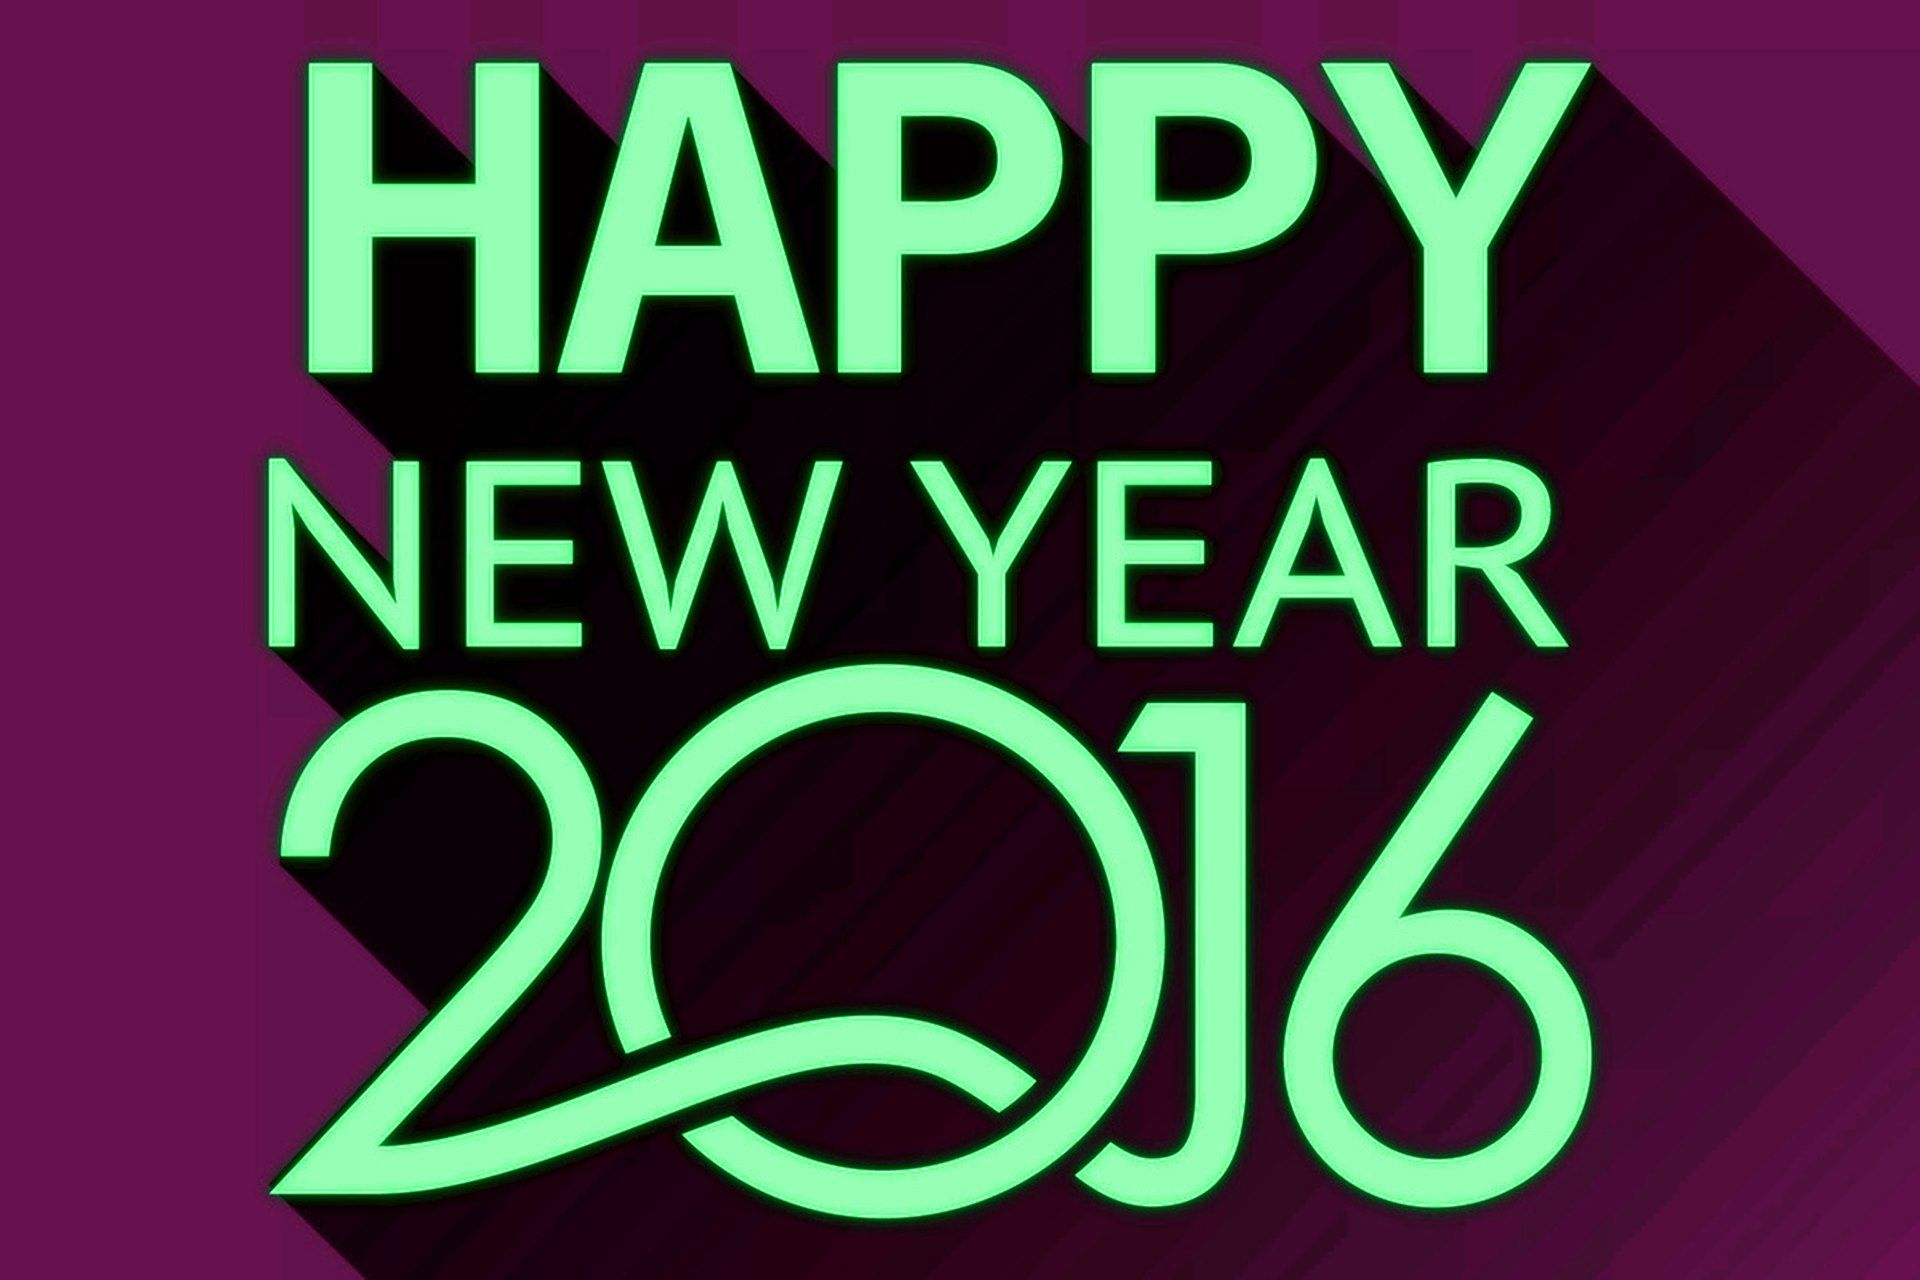 15 Happy New Year 2016 Free Download Latest Pictures And Messages